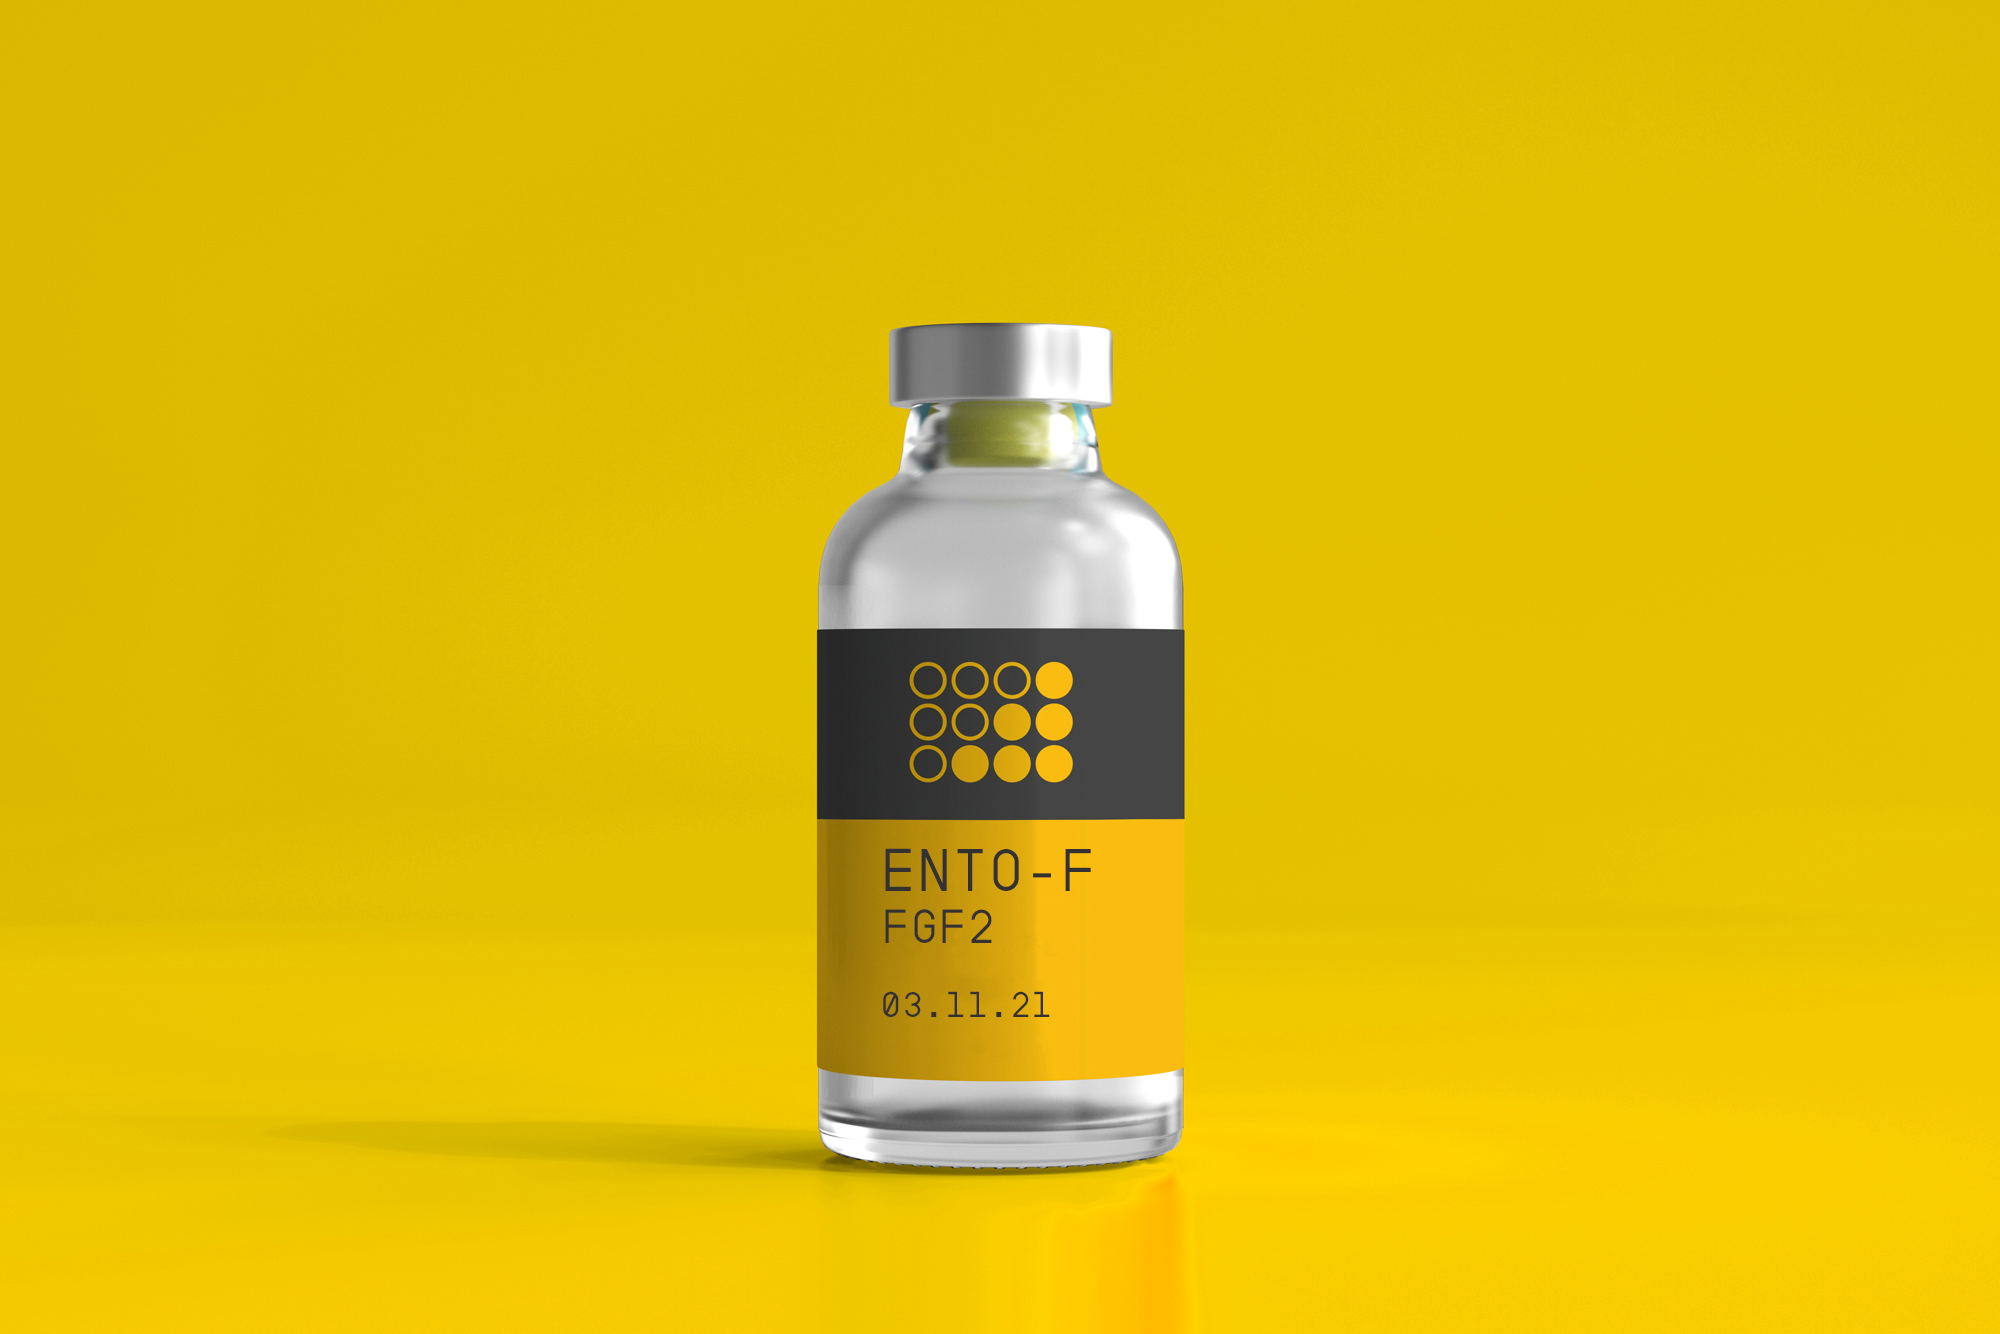 FGF2 Enriched Growth Media Supplement. 1000x concentrate recombinant bovine FGF2 enriched growth media supplement produced with the EntoEngine™ platform. Future Fields products are currently available for Research Use Only.